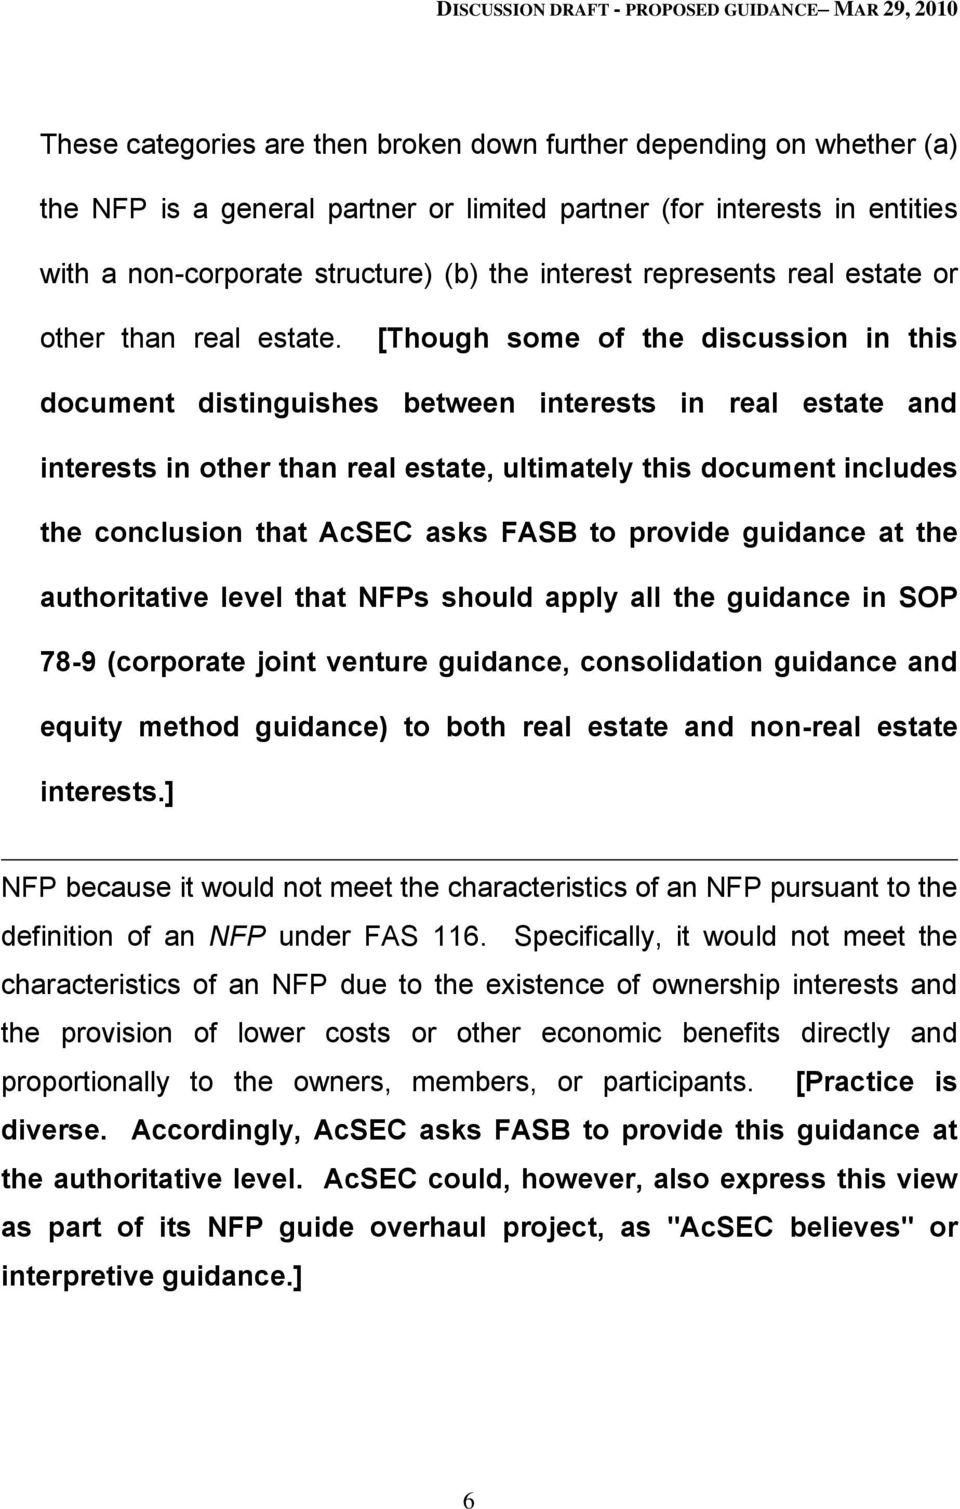 [Though some of the discussion in this document distinguishes between interests in real estate and interests in other than real estate, ultimately this document includes the conclusion that AcSEC